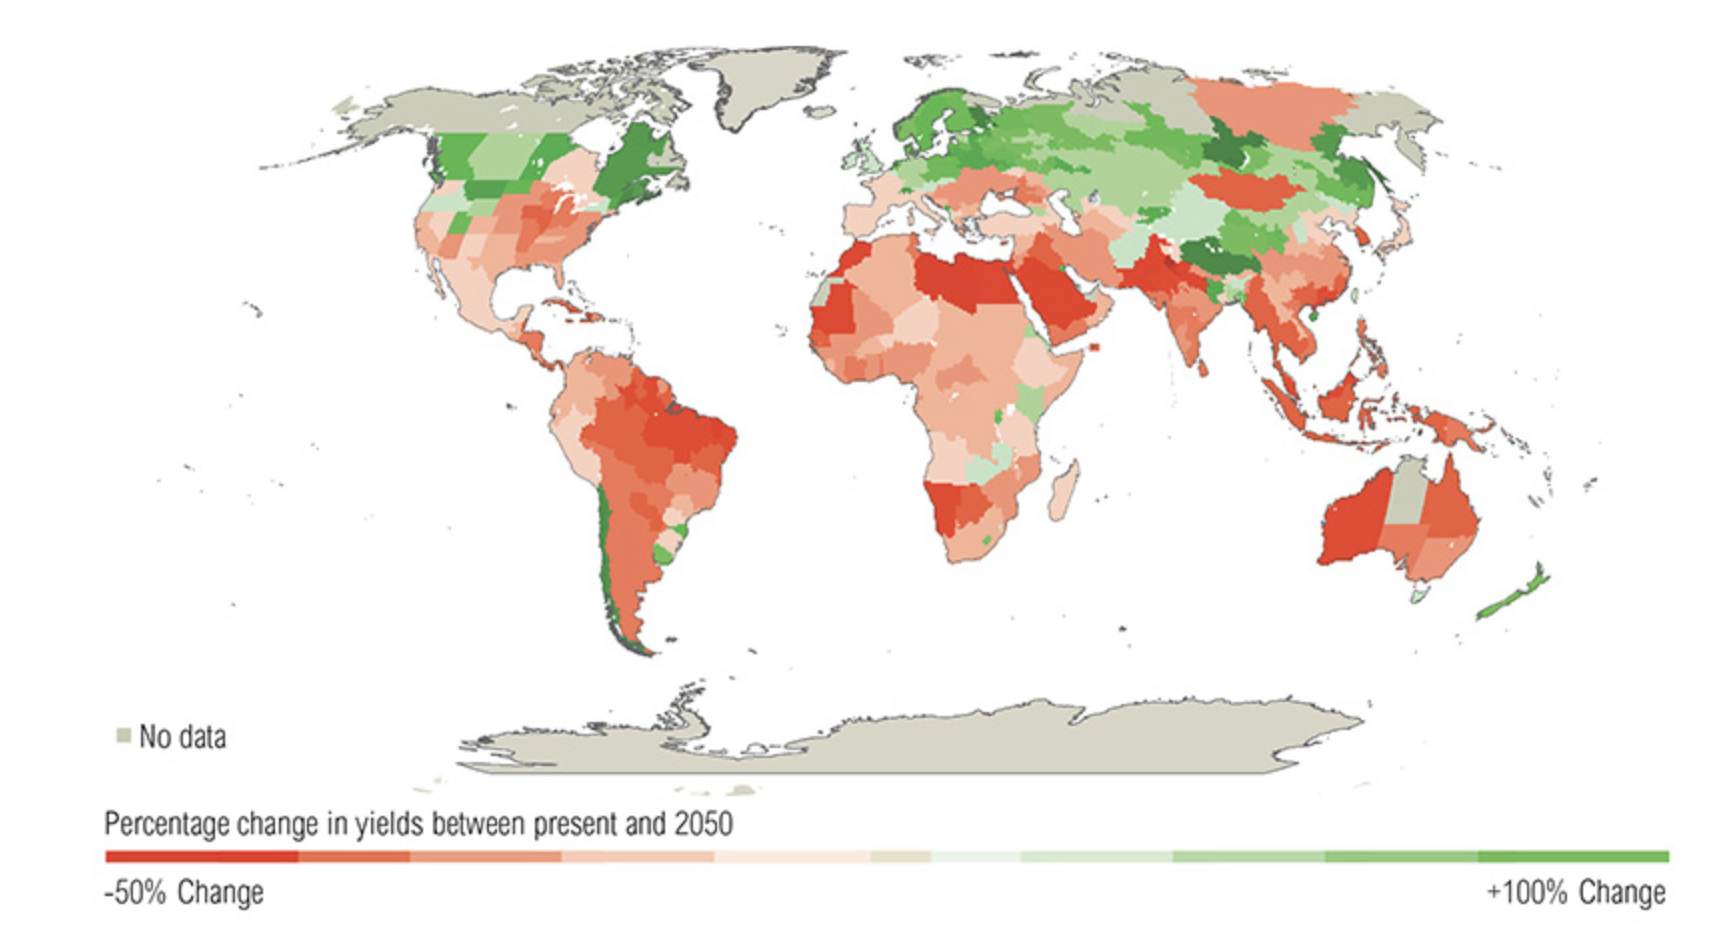 world map showing the effect of a 3 degree increase on crop yields due to climate change represented by varying shades of color between present unto 2050. There are areas experiencing up to a positive 100% change and others a -50% change.